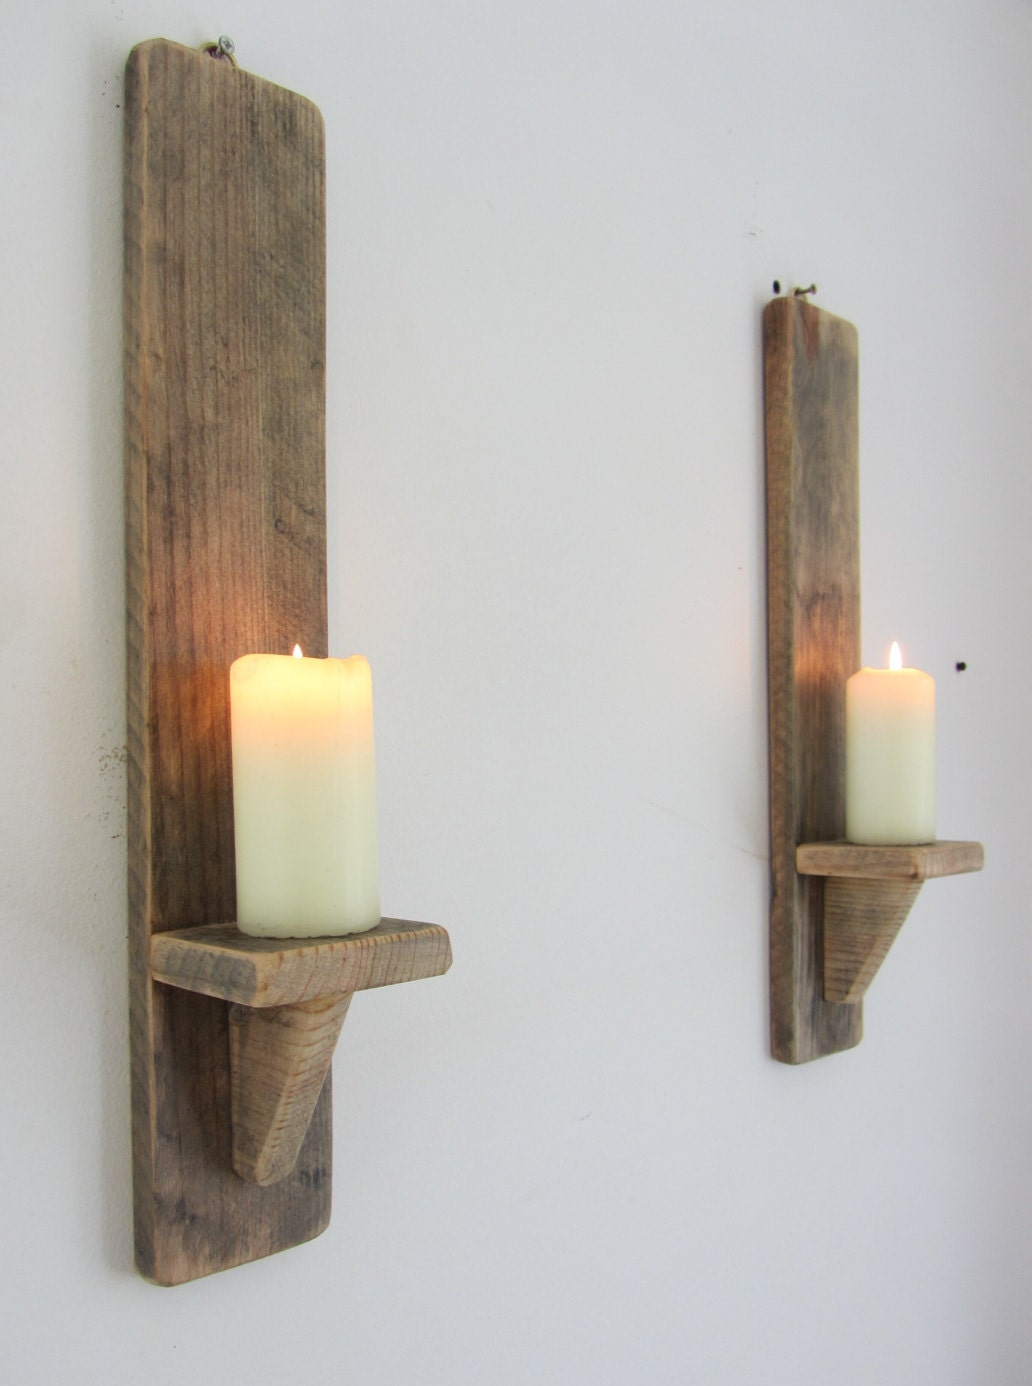 Candle Wall Sconces Rustic : Pair rustic recycled pallet wood wall sconce candle holders